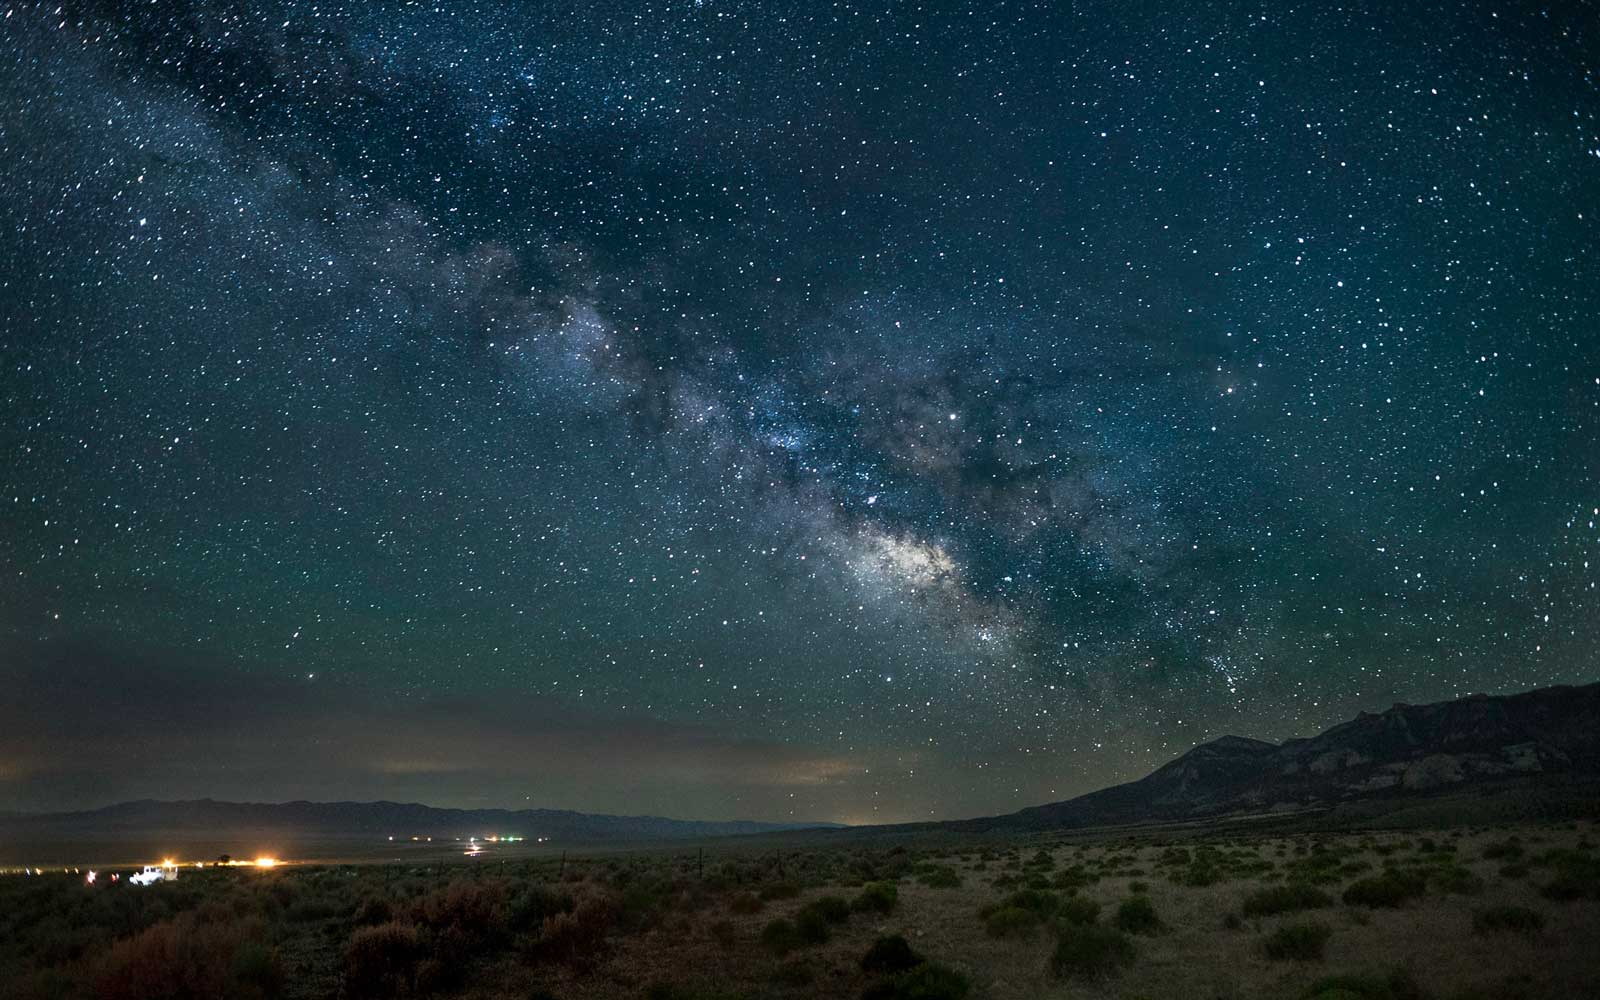 Dark night skies allow for mesmerizing stargazing opportunities at Great Basin National Park.